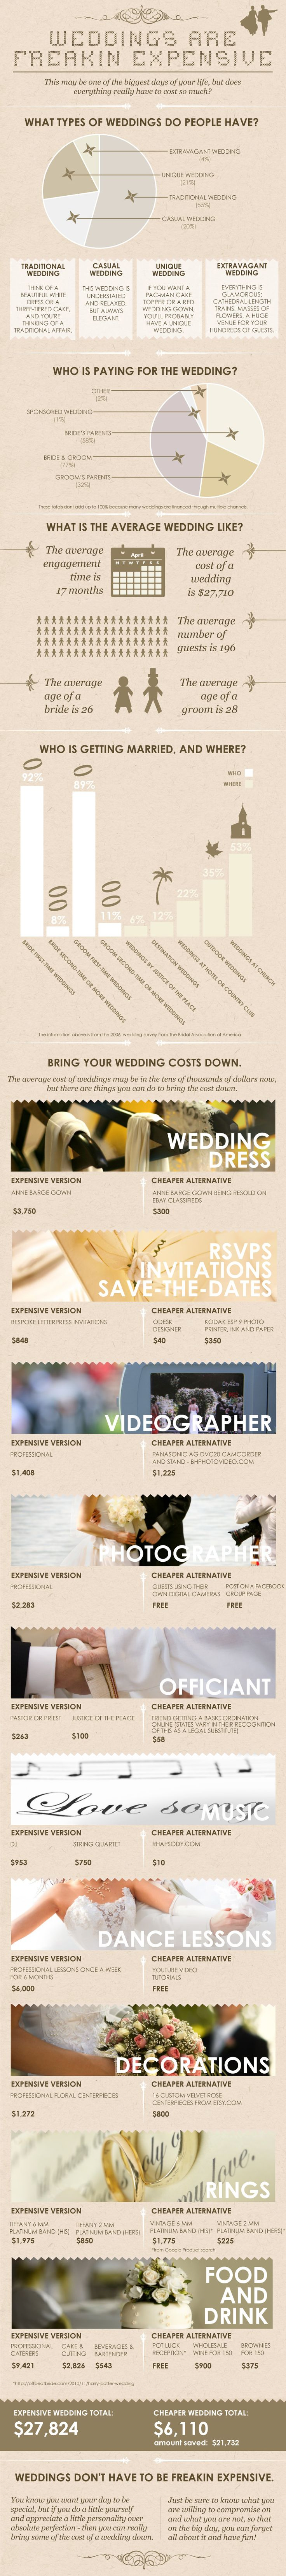 Weddings Are Freakin Expensive [INFOGRAPHIC] – Infographic List